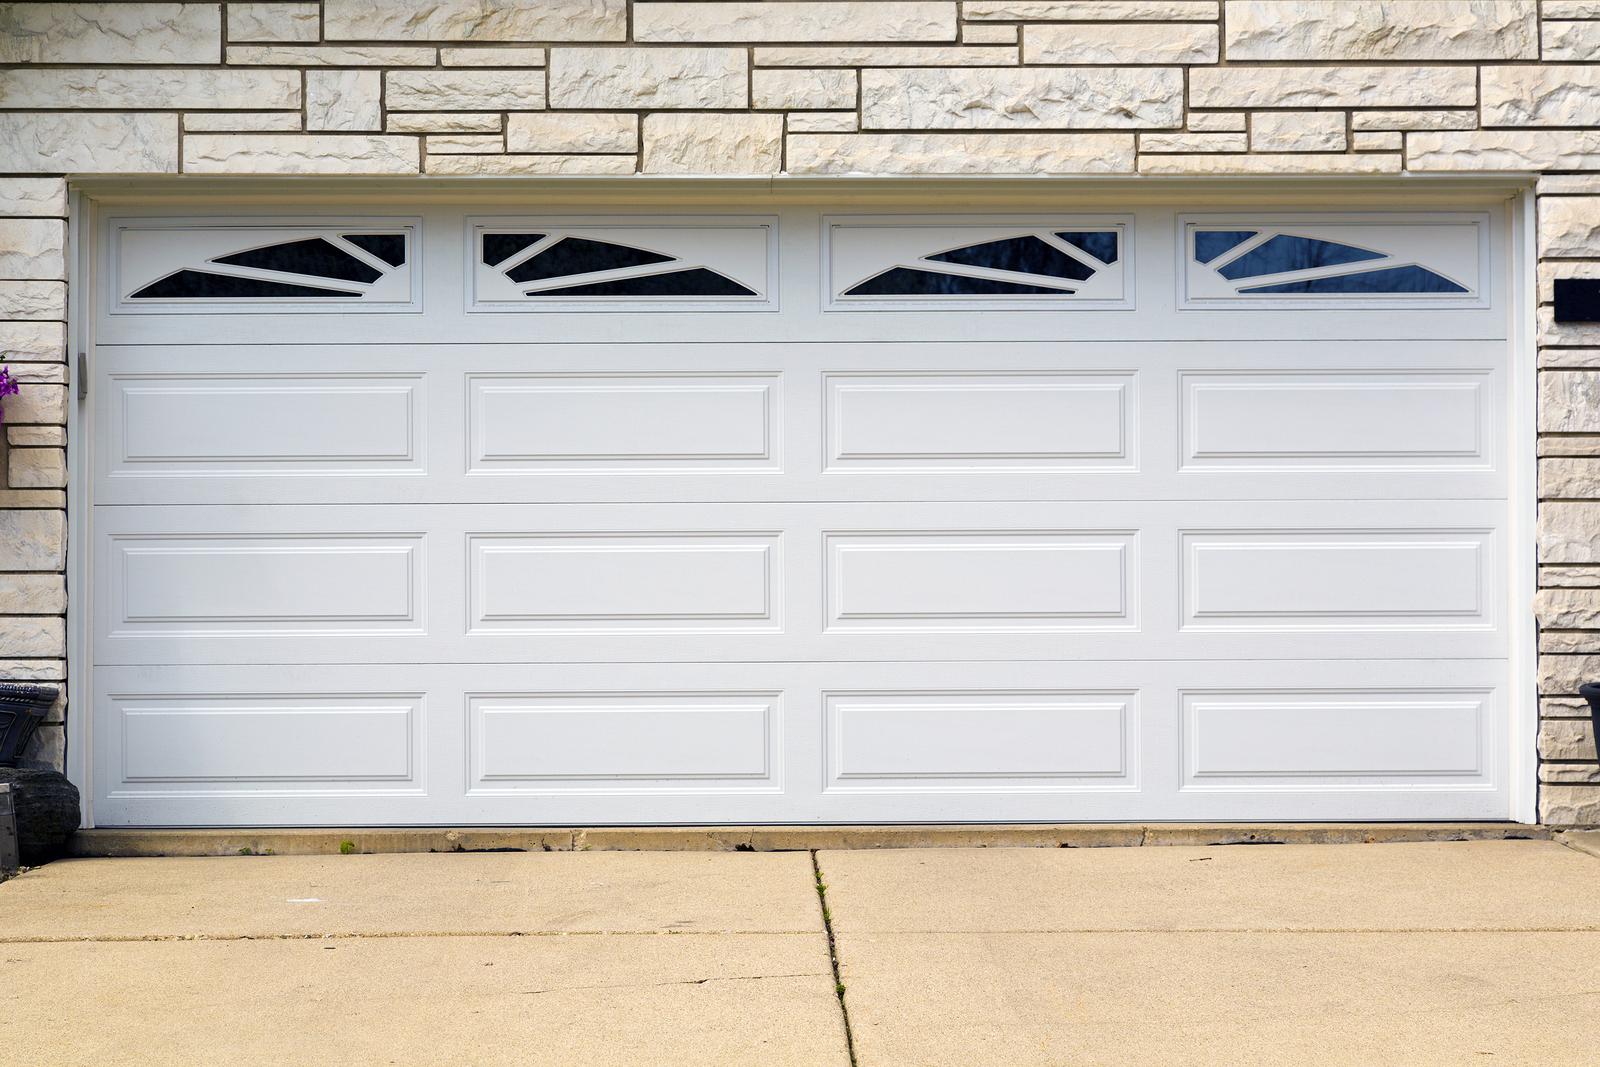 Le Meilleur Garage Door Safety Archives Perfect Solutions Garage Door Ce Mois Ci